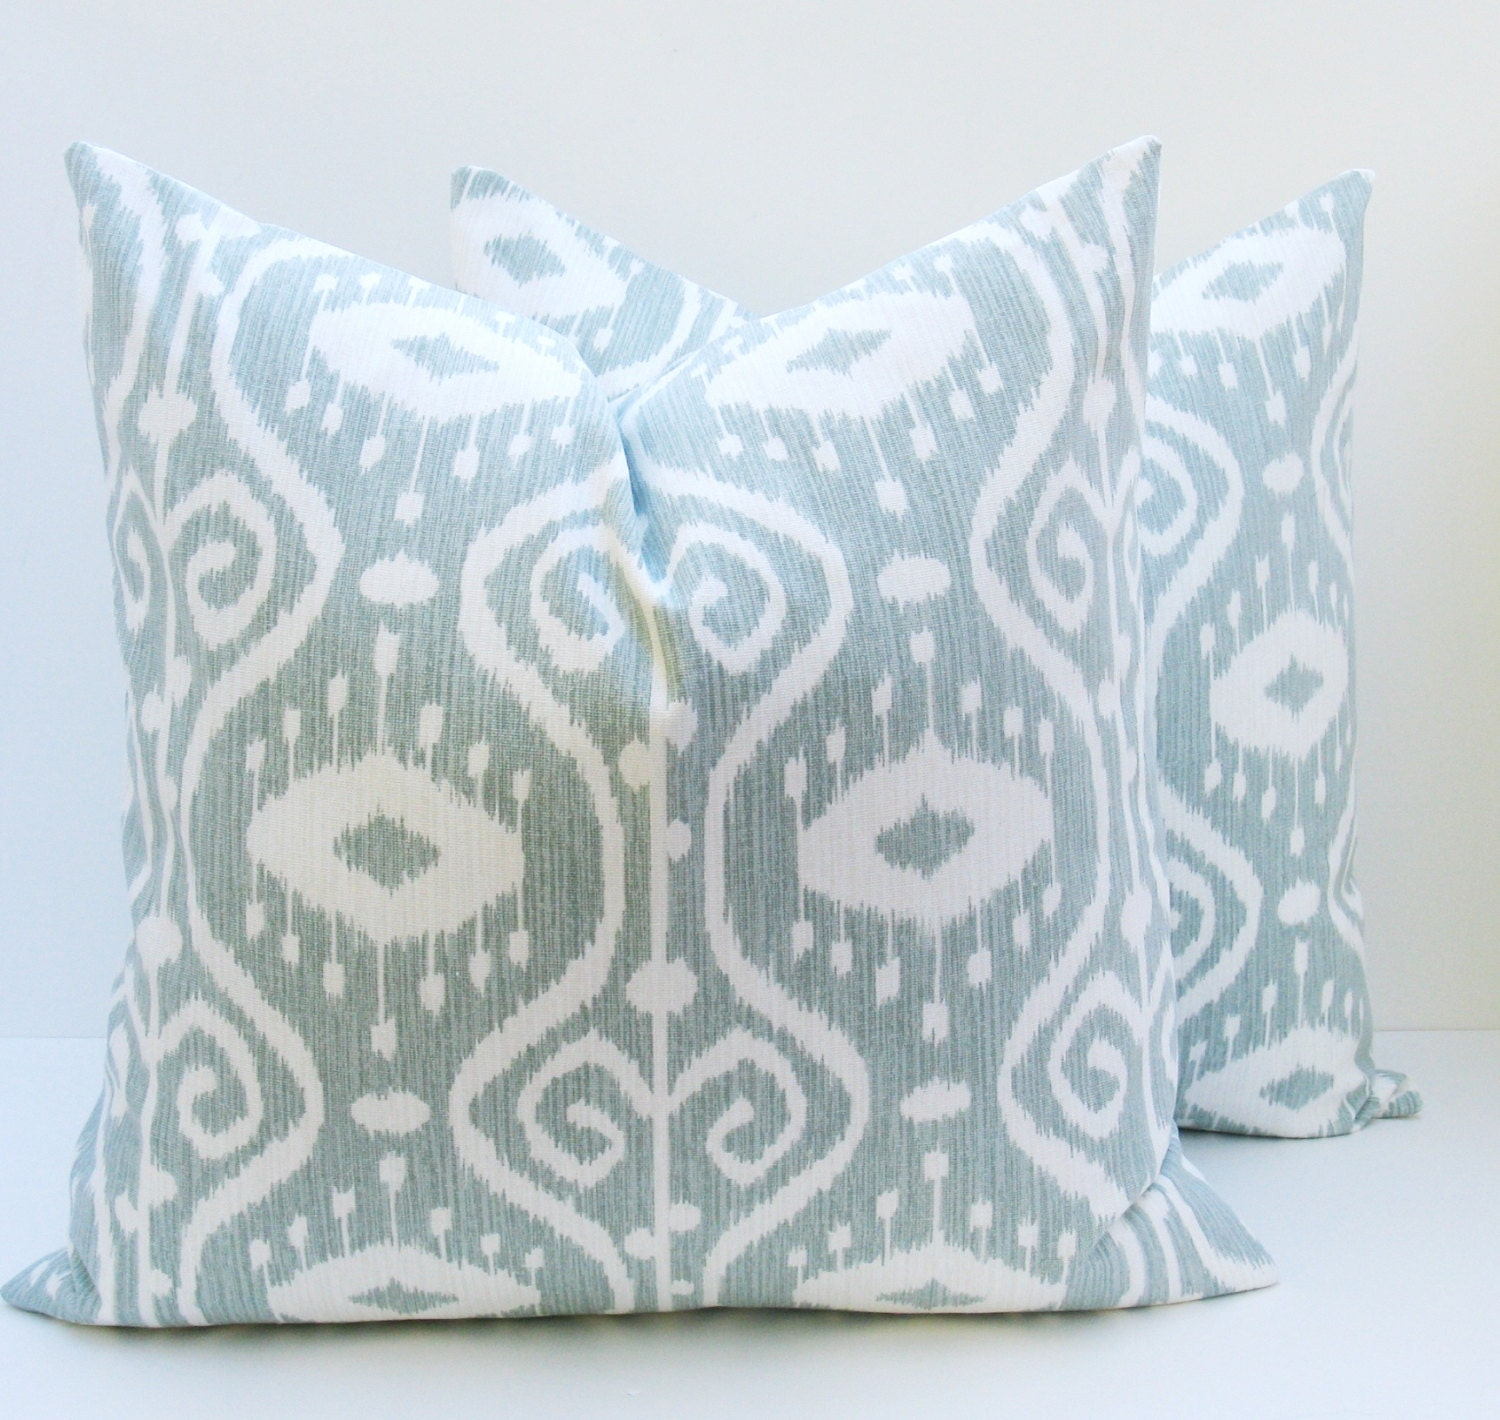 Ikat Pillow 20x20 Blue Green Pillow. Light Blue. 20 x 20. Gray Blue .Decorator Pillow Covers Cushions Housewares  Printed fabric both sides